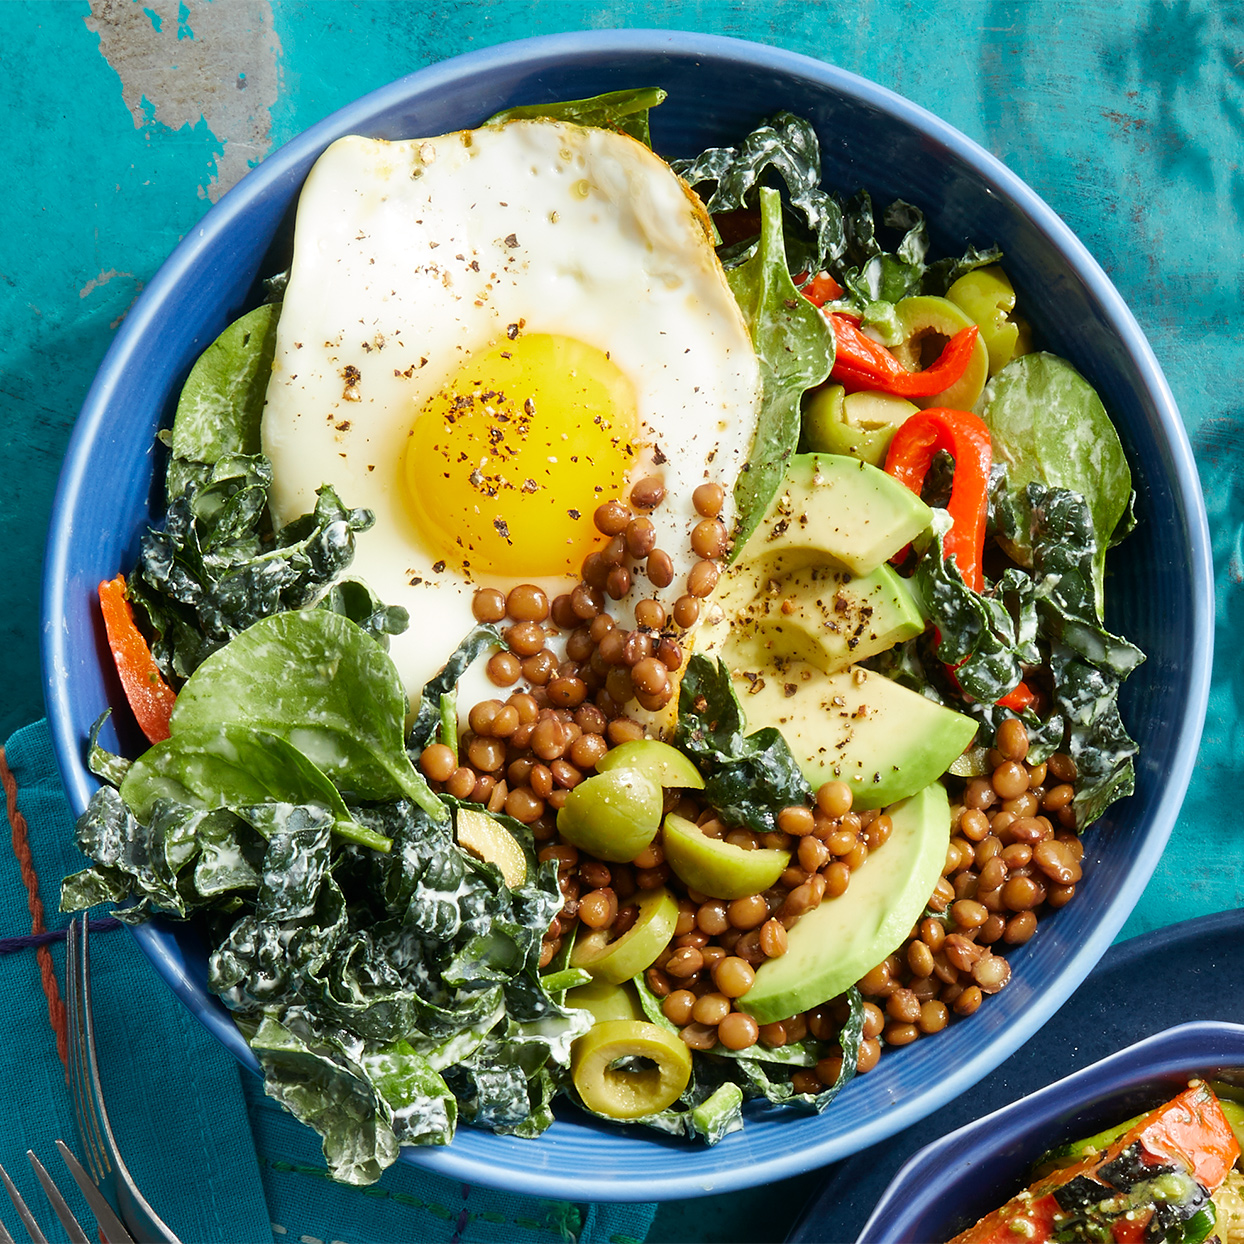 Lentil Bowls with Fried Eggs & Greens Trusted Brands